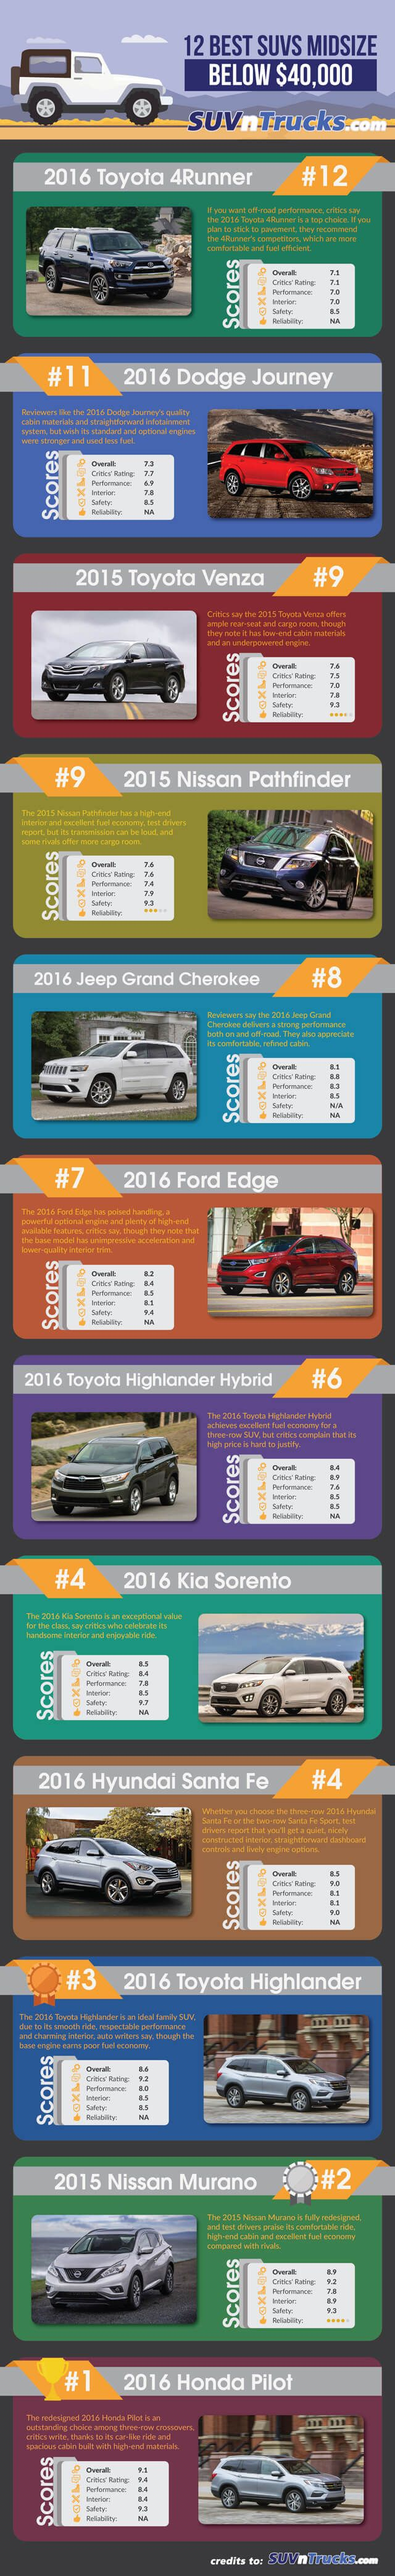 12 Best Midsize SUVs Below $40,000 We have gathered information about 12 best midsize SUVs below $40,000 for you to take a look. Here, you can also read a full review about each and every one of the cars for a detailed view and better comparison.  (Infographics)